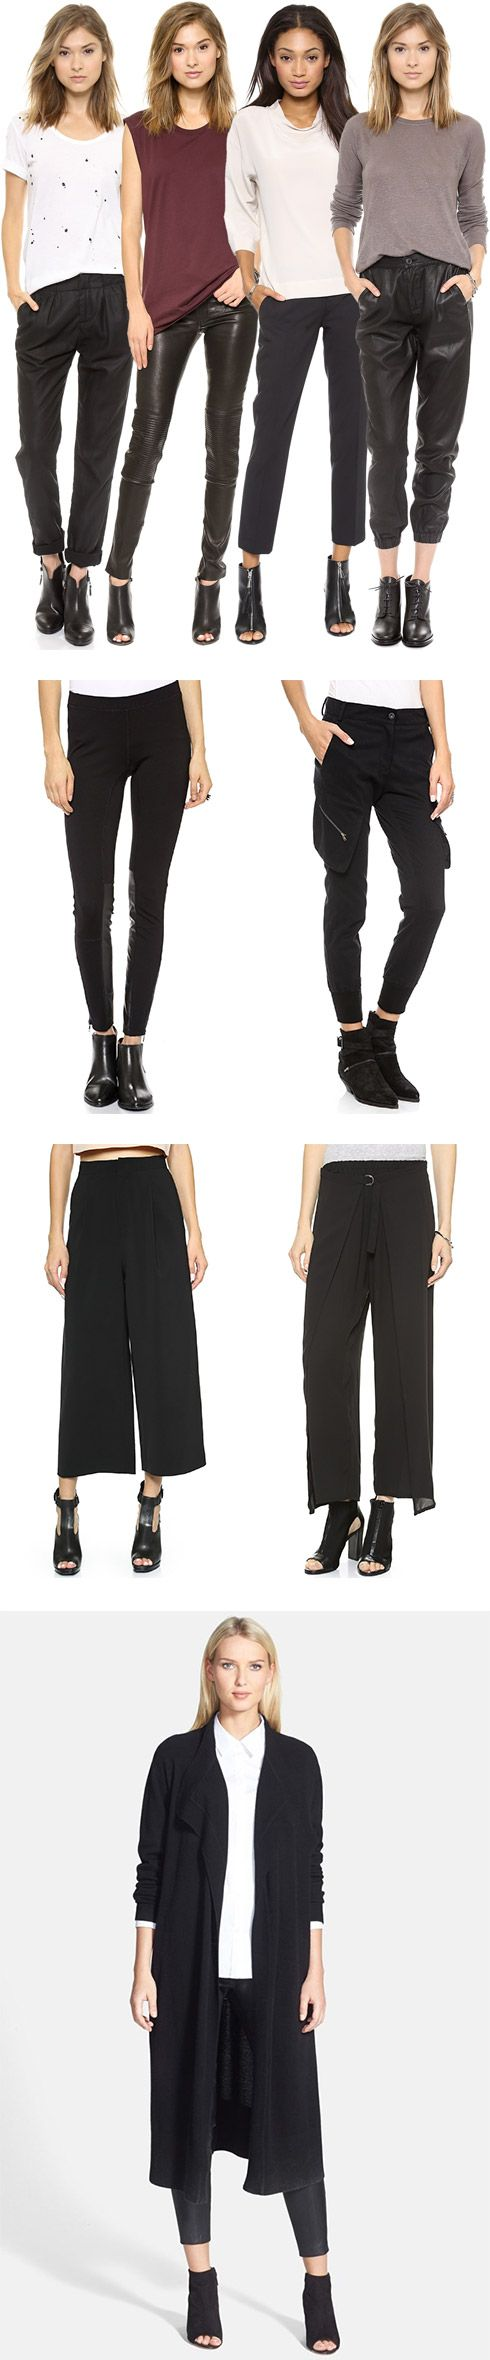 Pair Black Ankle Pants with Black Booties - YLF At ankle bone or 4-6 inches above ankle bone for most flattering look